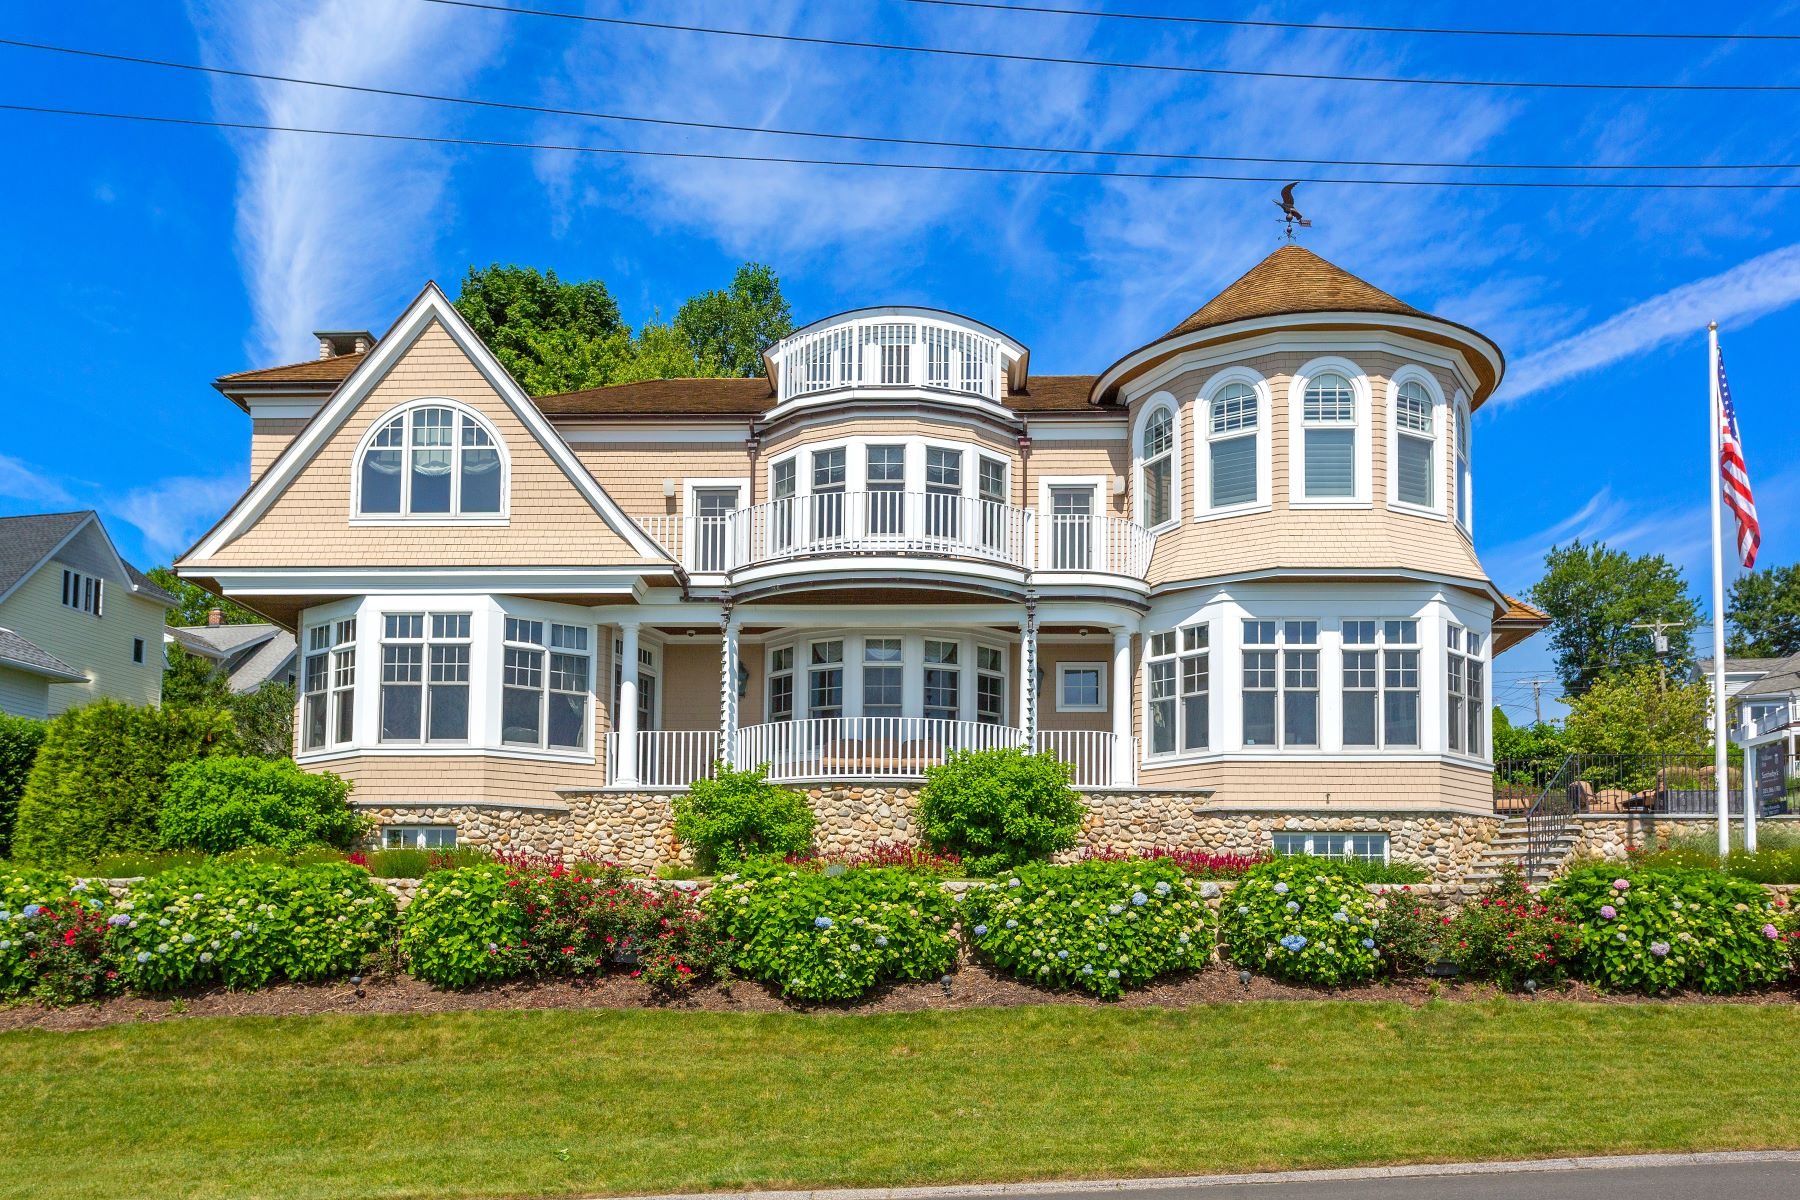 Single Family Homes for Sale at Luxurious Waterfront Living! 65 Morningside Drive Milford, Connecticut 06460 United States